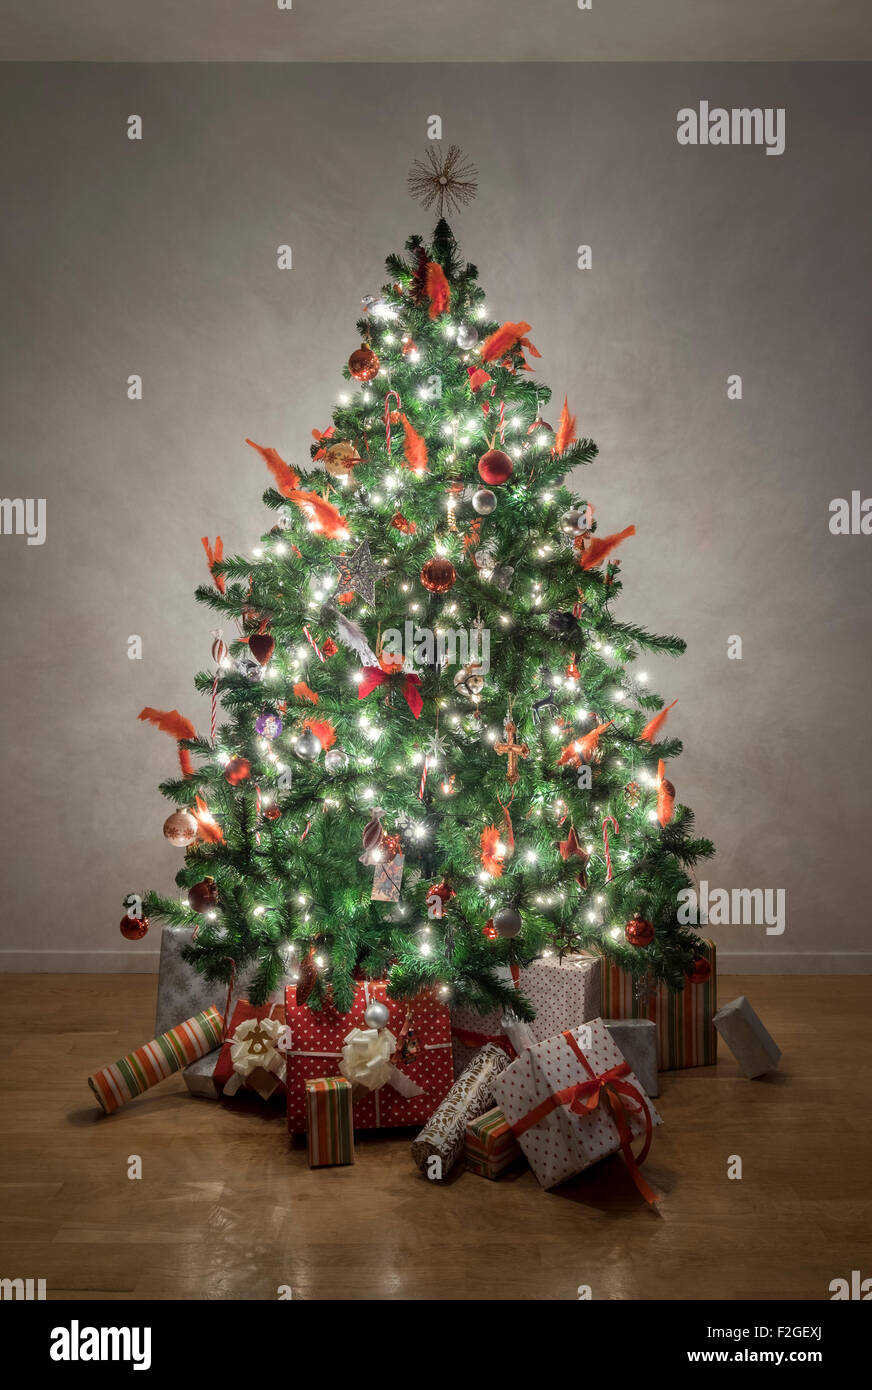 Beau Sapin Noël dans un salon Photo Stock